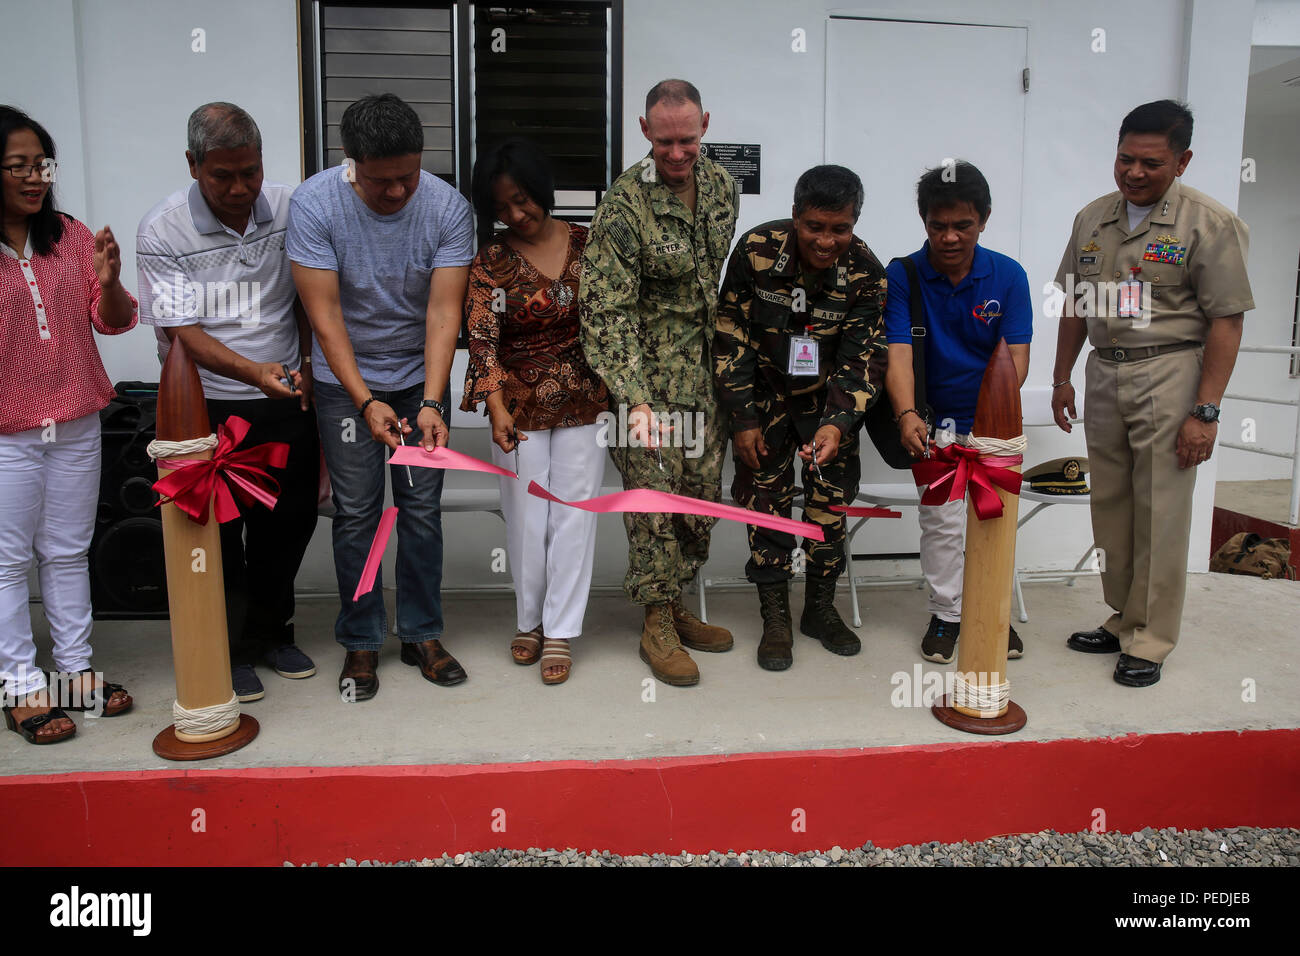 150810-M-GO800-344 SAN FERNANDO CITY, Philippines (Aug. 10, 2015) – Pacific Partnership 2015 and Philippine leadership cut the ribbon to Eulogio Clarence M. De Guzman Elementary School during a ribbon cutting ceremony Aug. 10. Task Force Forager will be in the Philippines until Aug. 15 providing medical and engineering assistance. Task Force Forager, embarked aboard the Military Sealift Command joint high speed vessel USNS Millinocket (JHSV 3) is serving as the secondary platform for Pacific Partnership, led by an expeditionary command element from the Navy's 30th Naval Construction Regiment ( - Stock Image